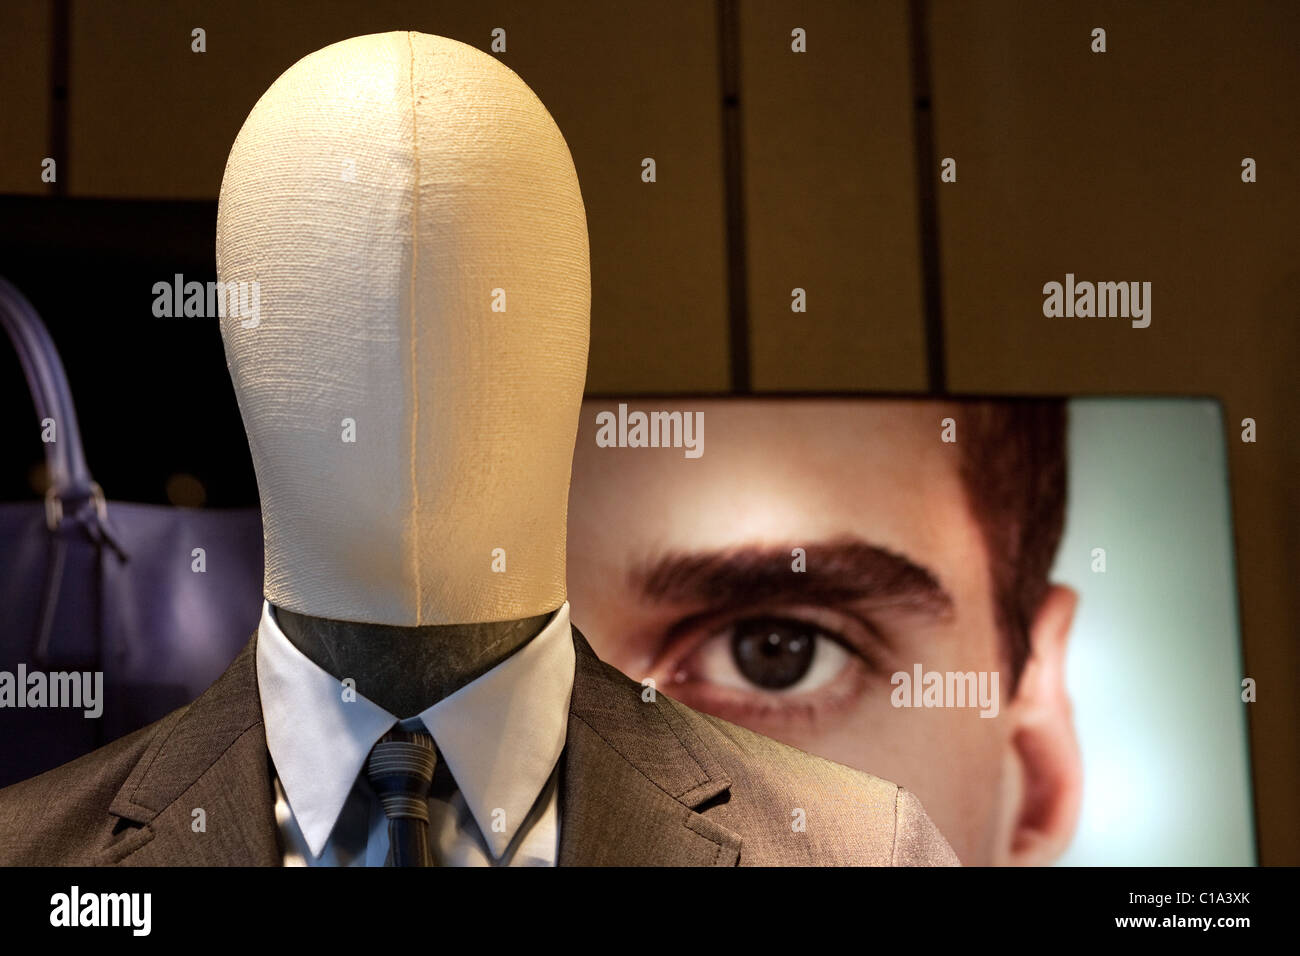 faceless shop window dummy and face peering over shoulder, Venice, Italy - Stock Image